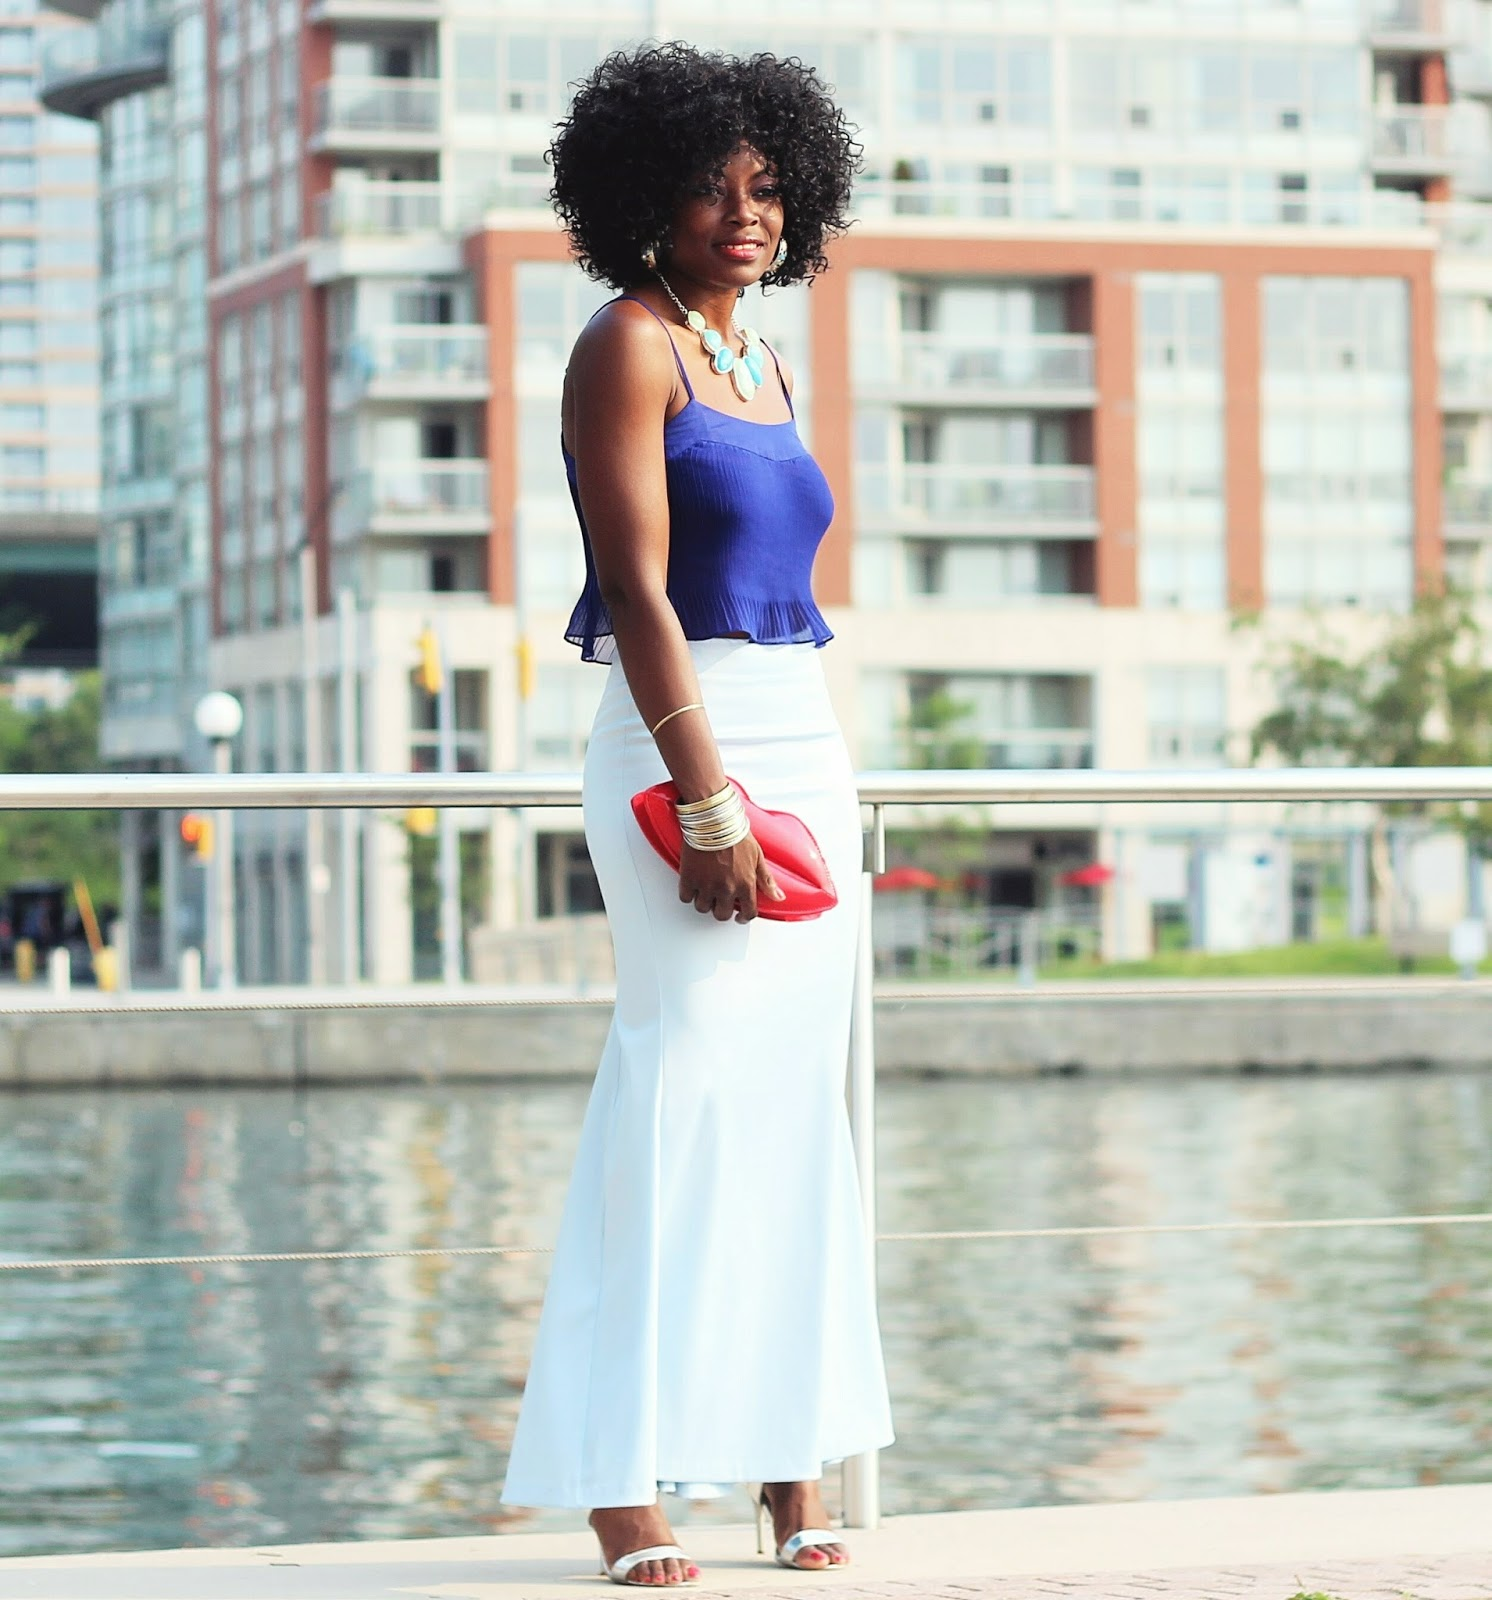 BLUE ON BLUE | CROP TOP x FISH TAIL MAXI SKIRT